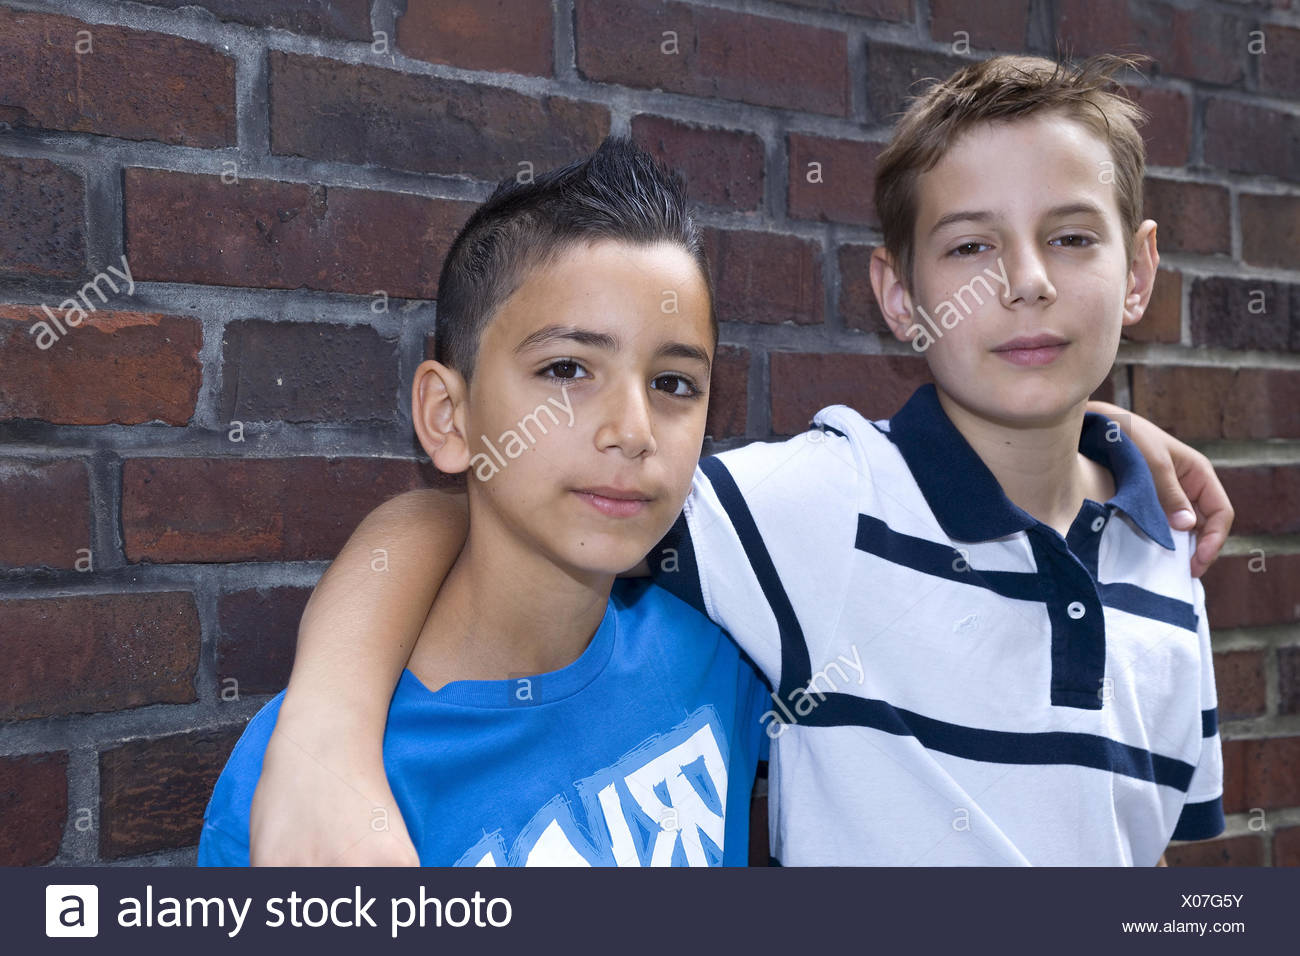 two boys, mates, friendship, view camera, portrait, - Stock Image